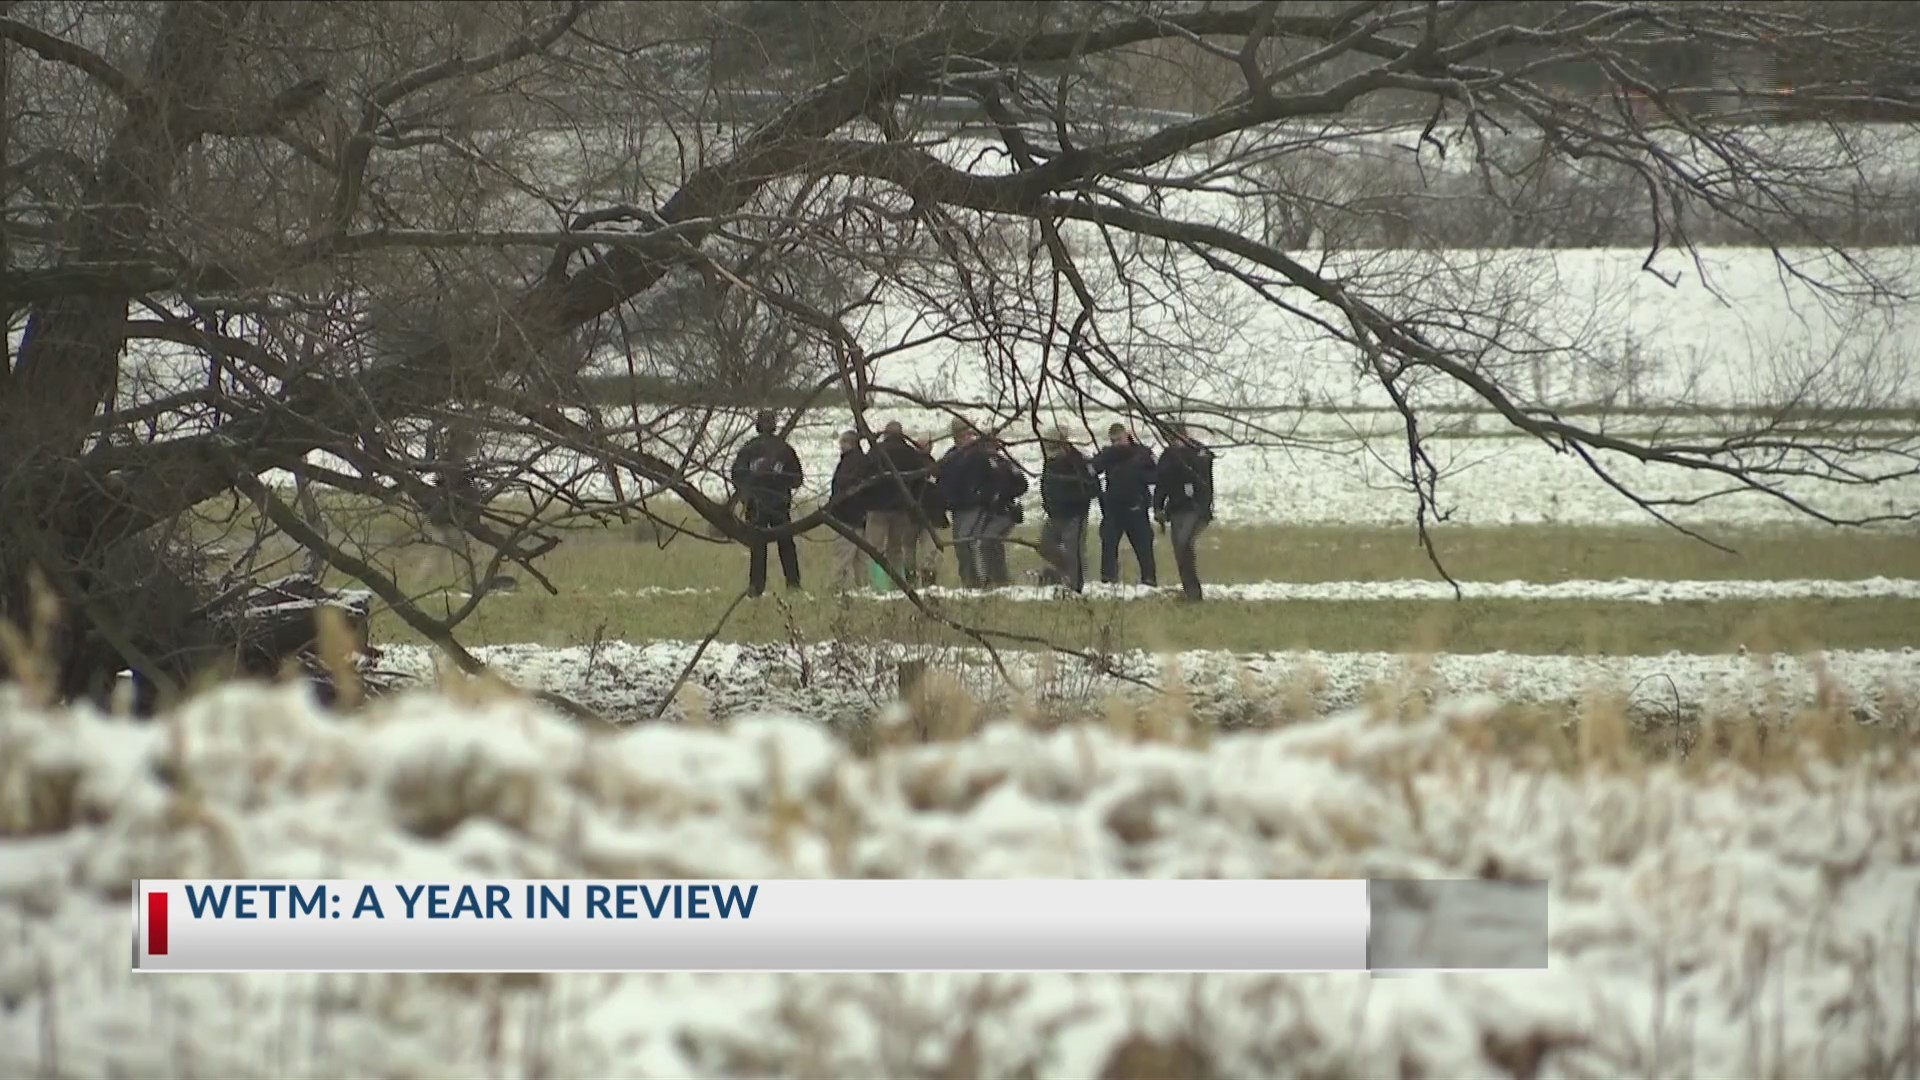 WETM YEAR IN REVIEW